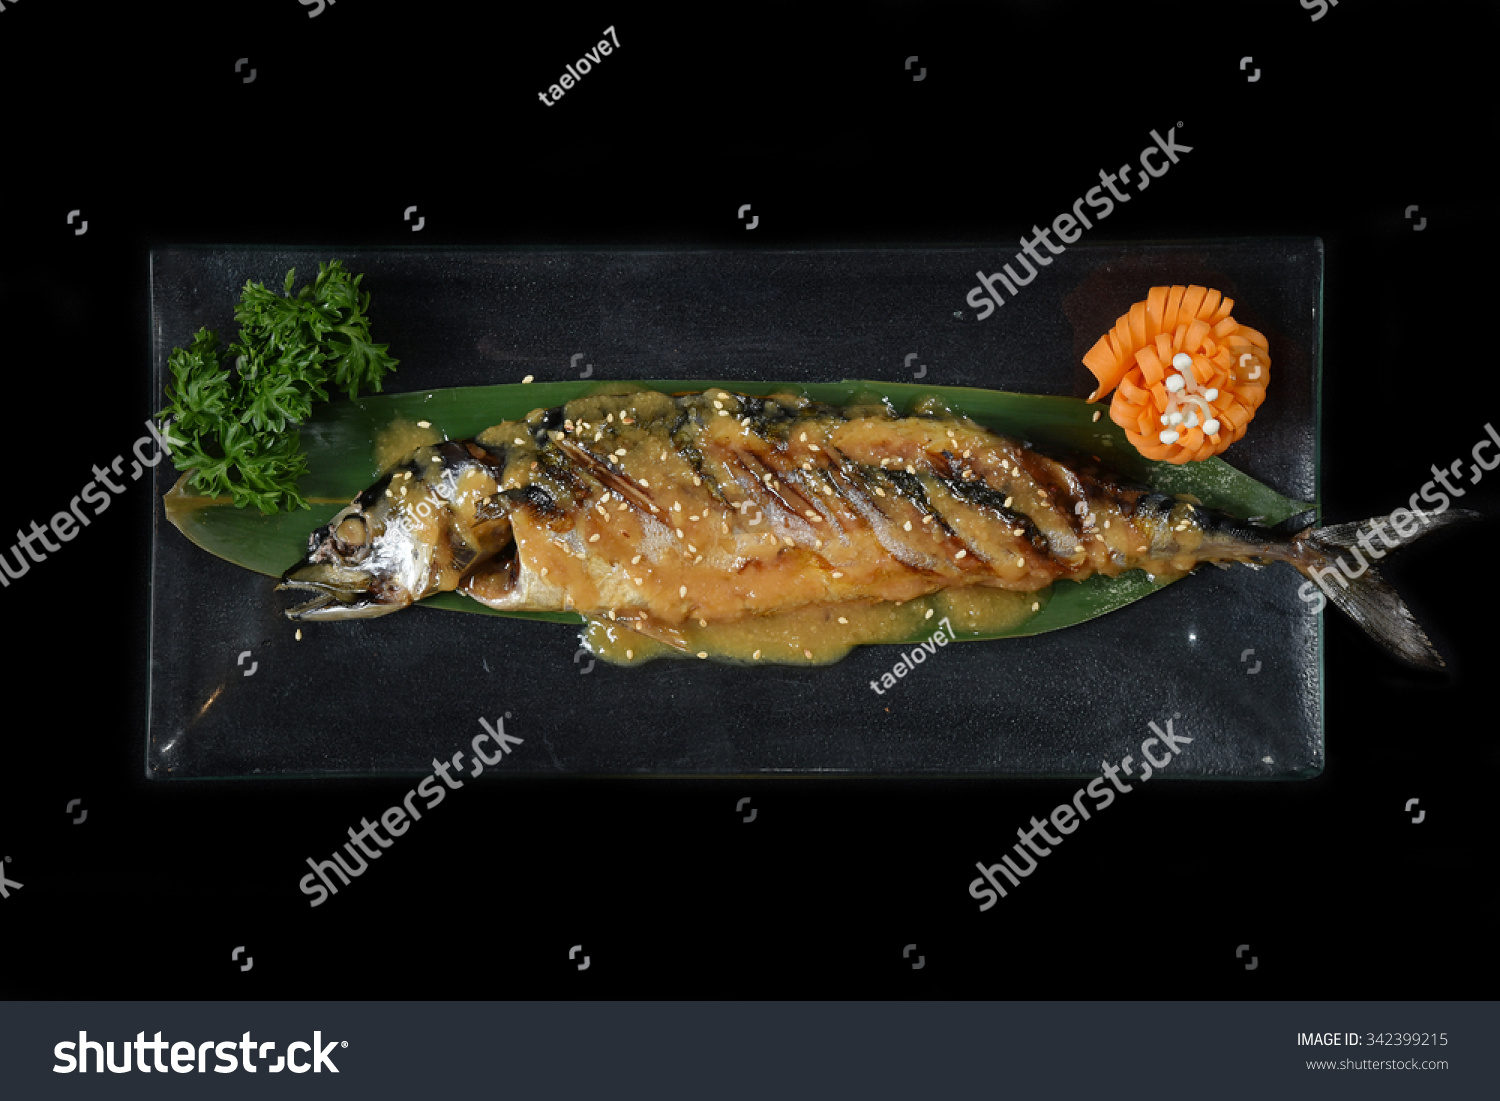 Saba fish grilled with miso sauce japanese food style for Miso sauce for fish